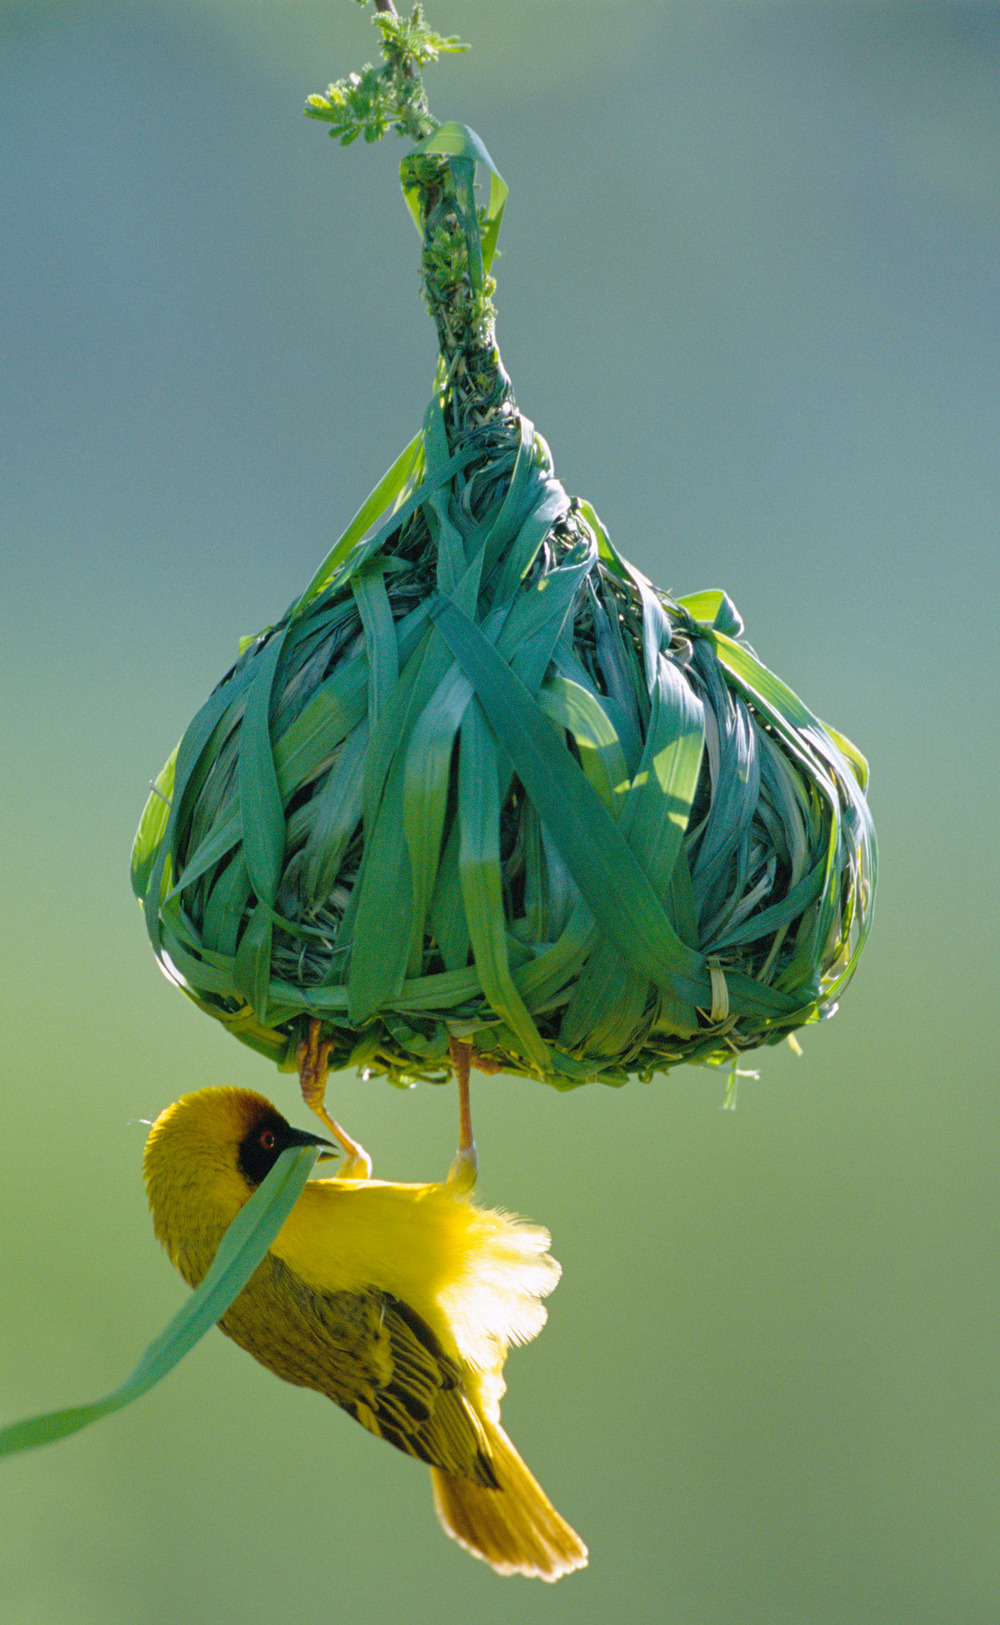 Vitelline masked weaver building nest, Samburu National Reserve, Kenya